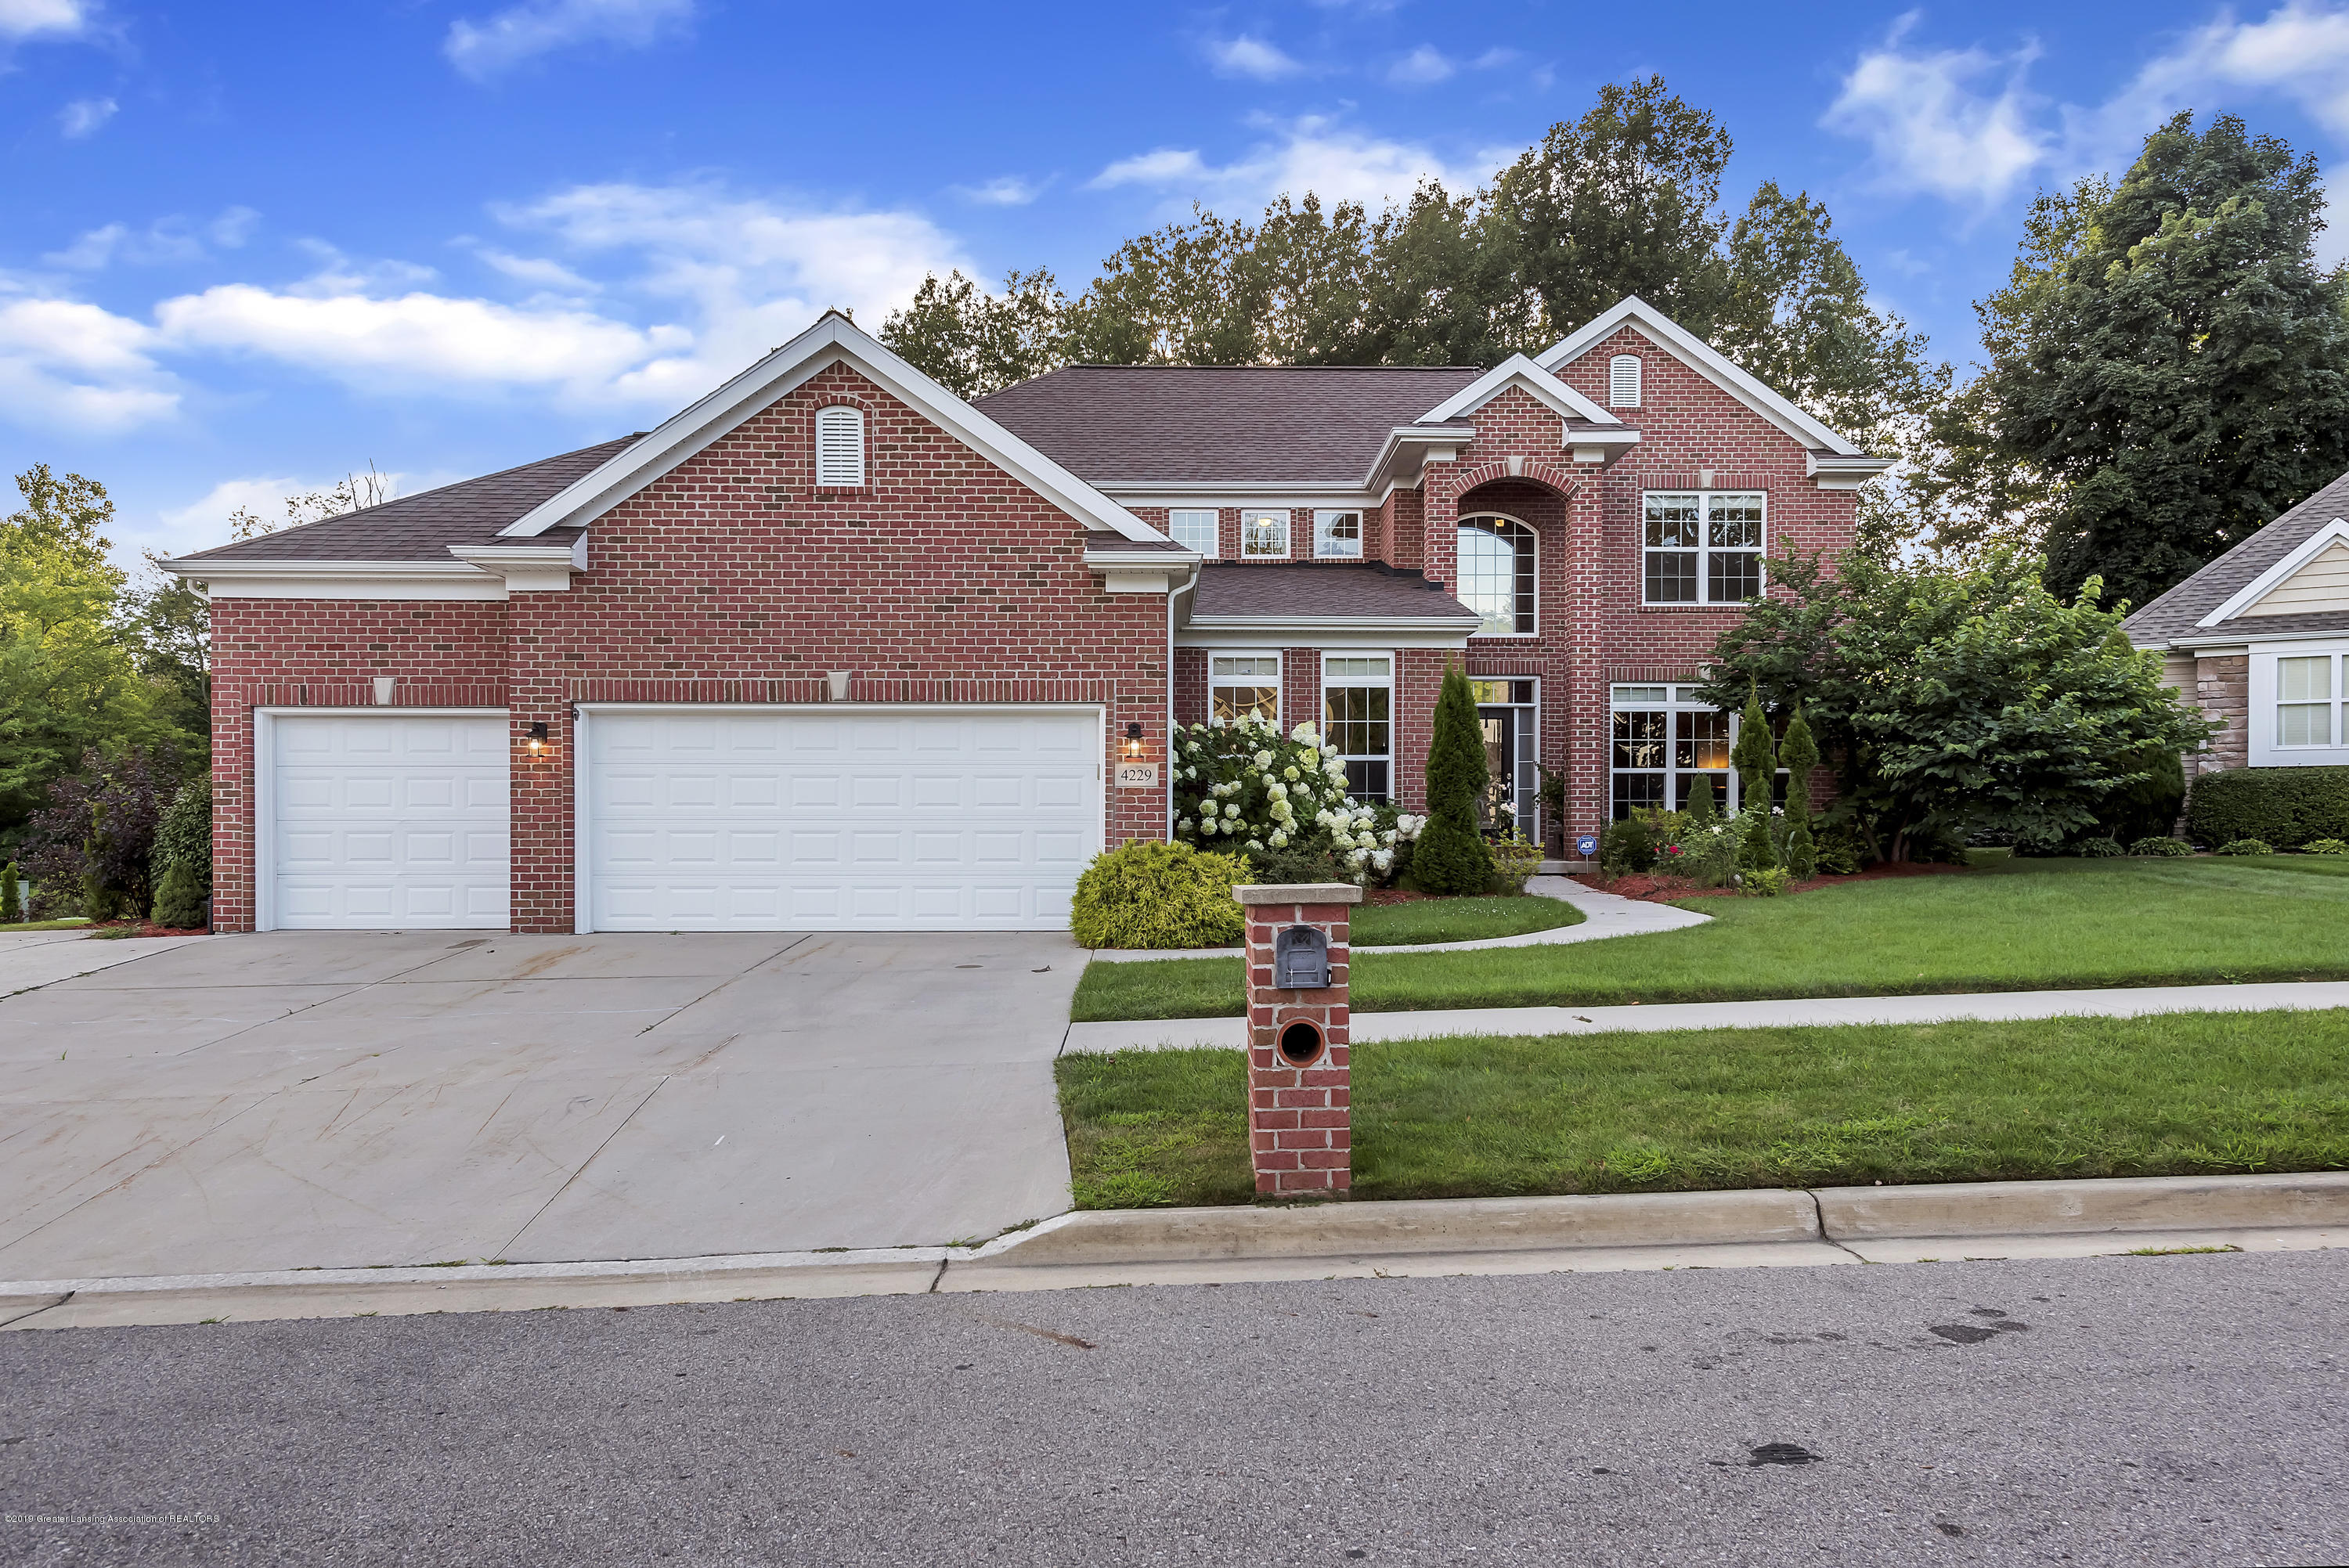 4229 Rain Forest Cir - 4229-Rainforest-Circle-Okemos-MI-windows - 3